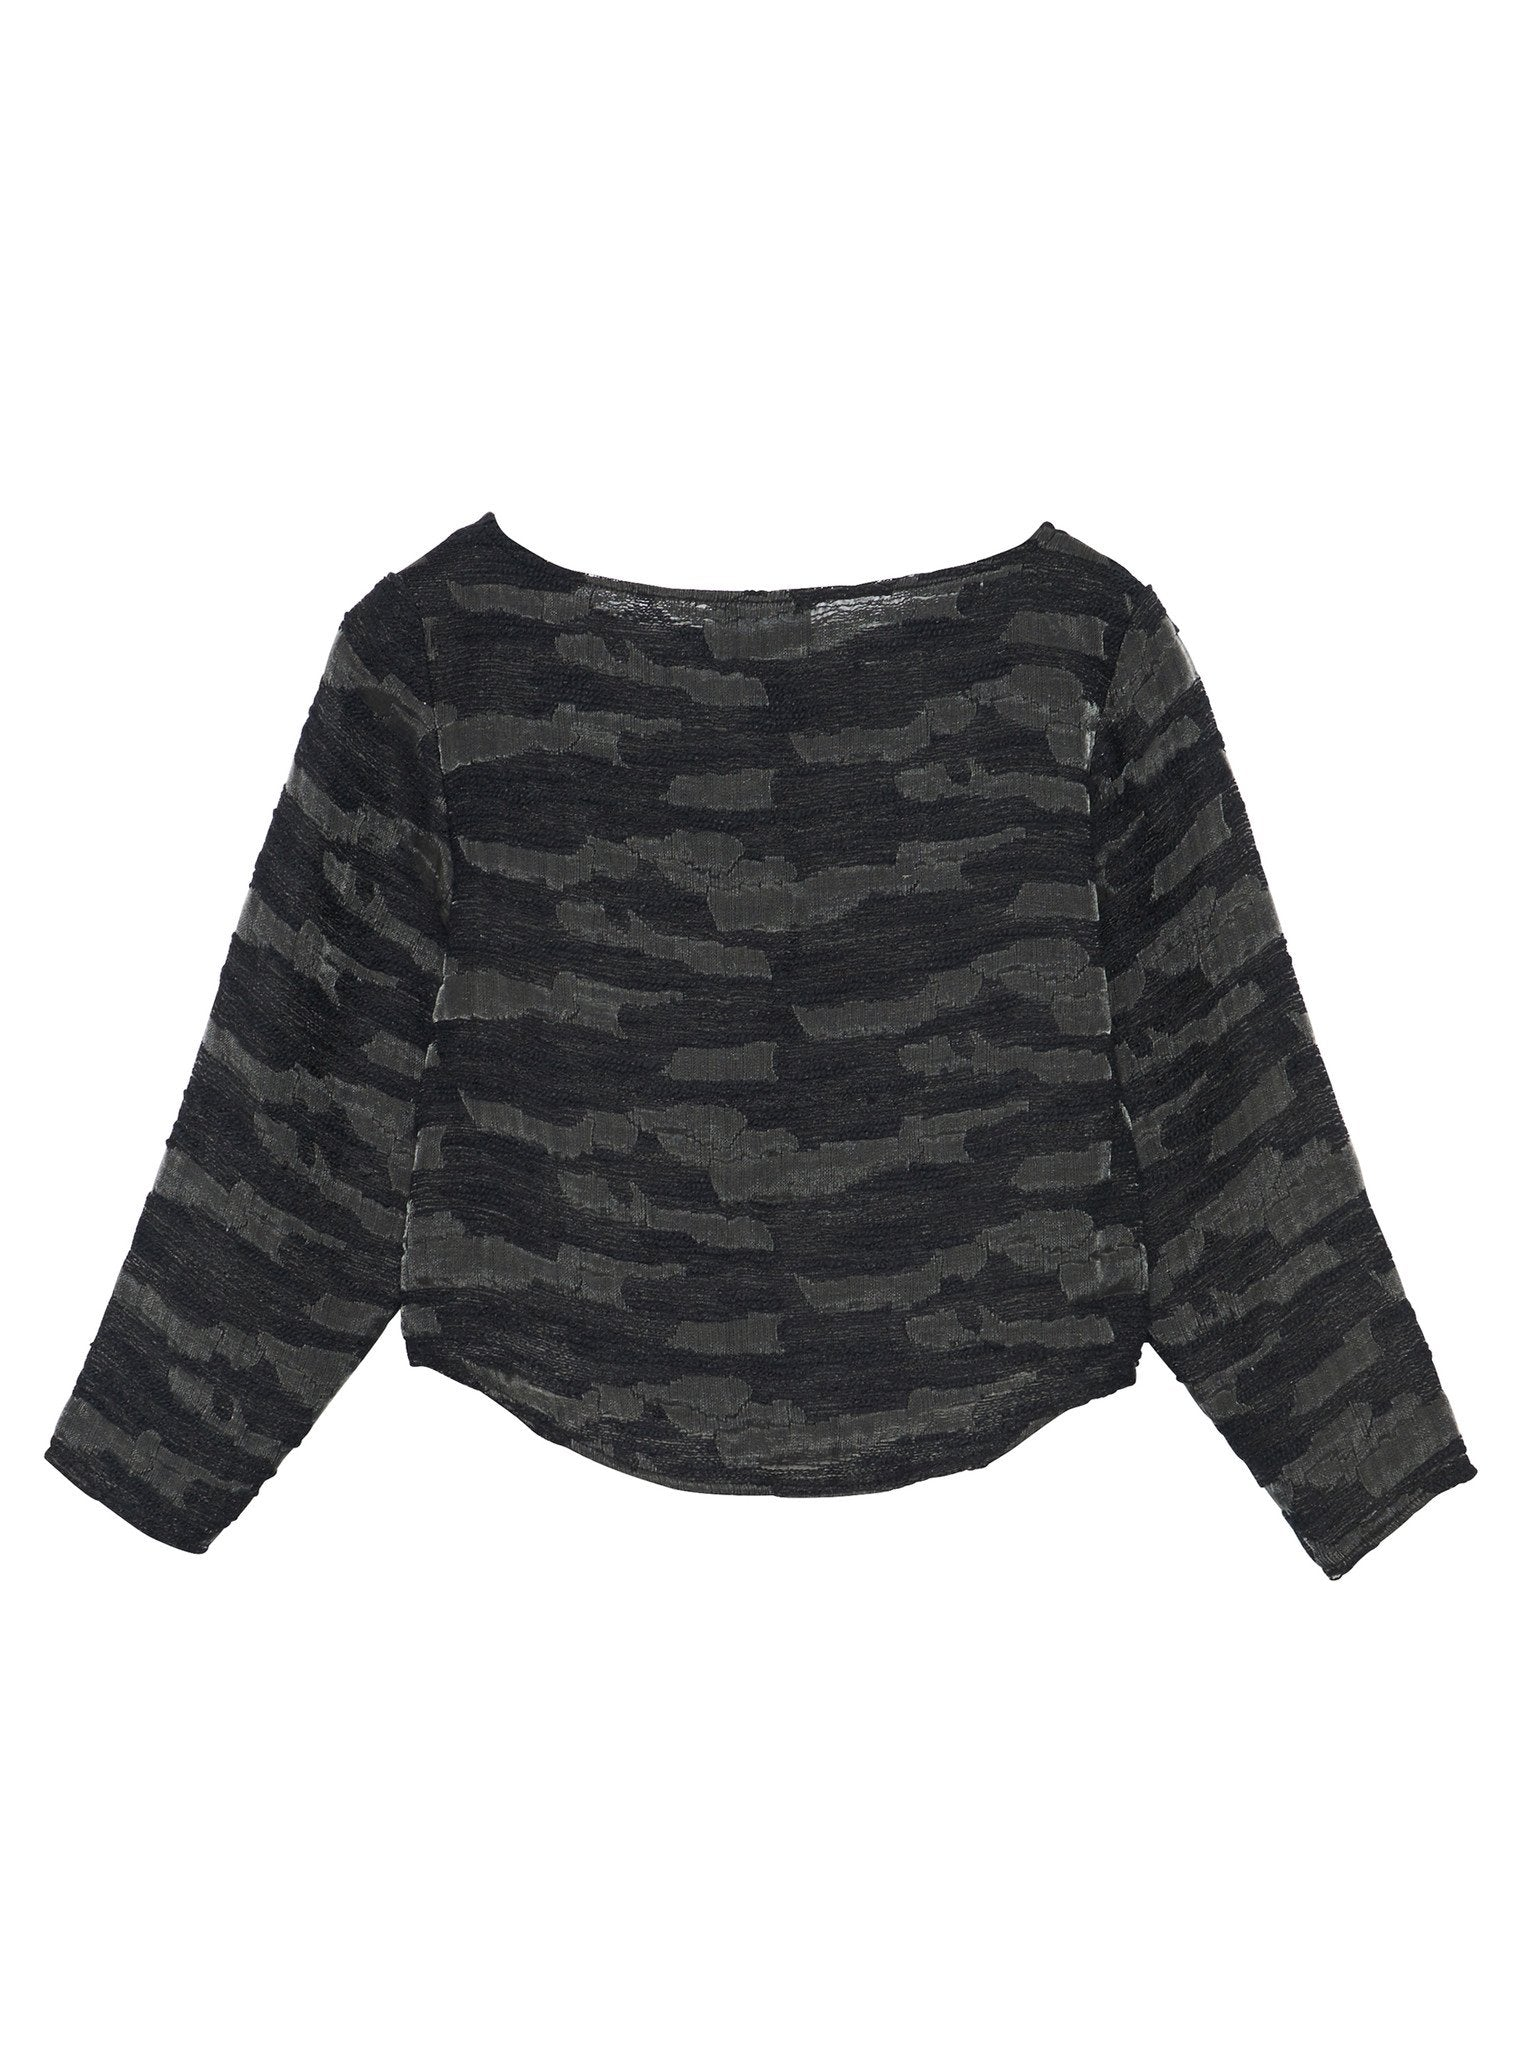 Port Blouse / Black Jacquard